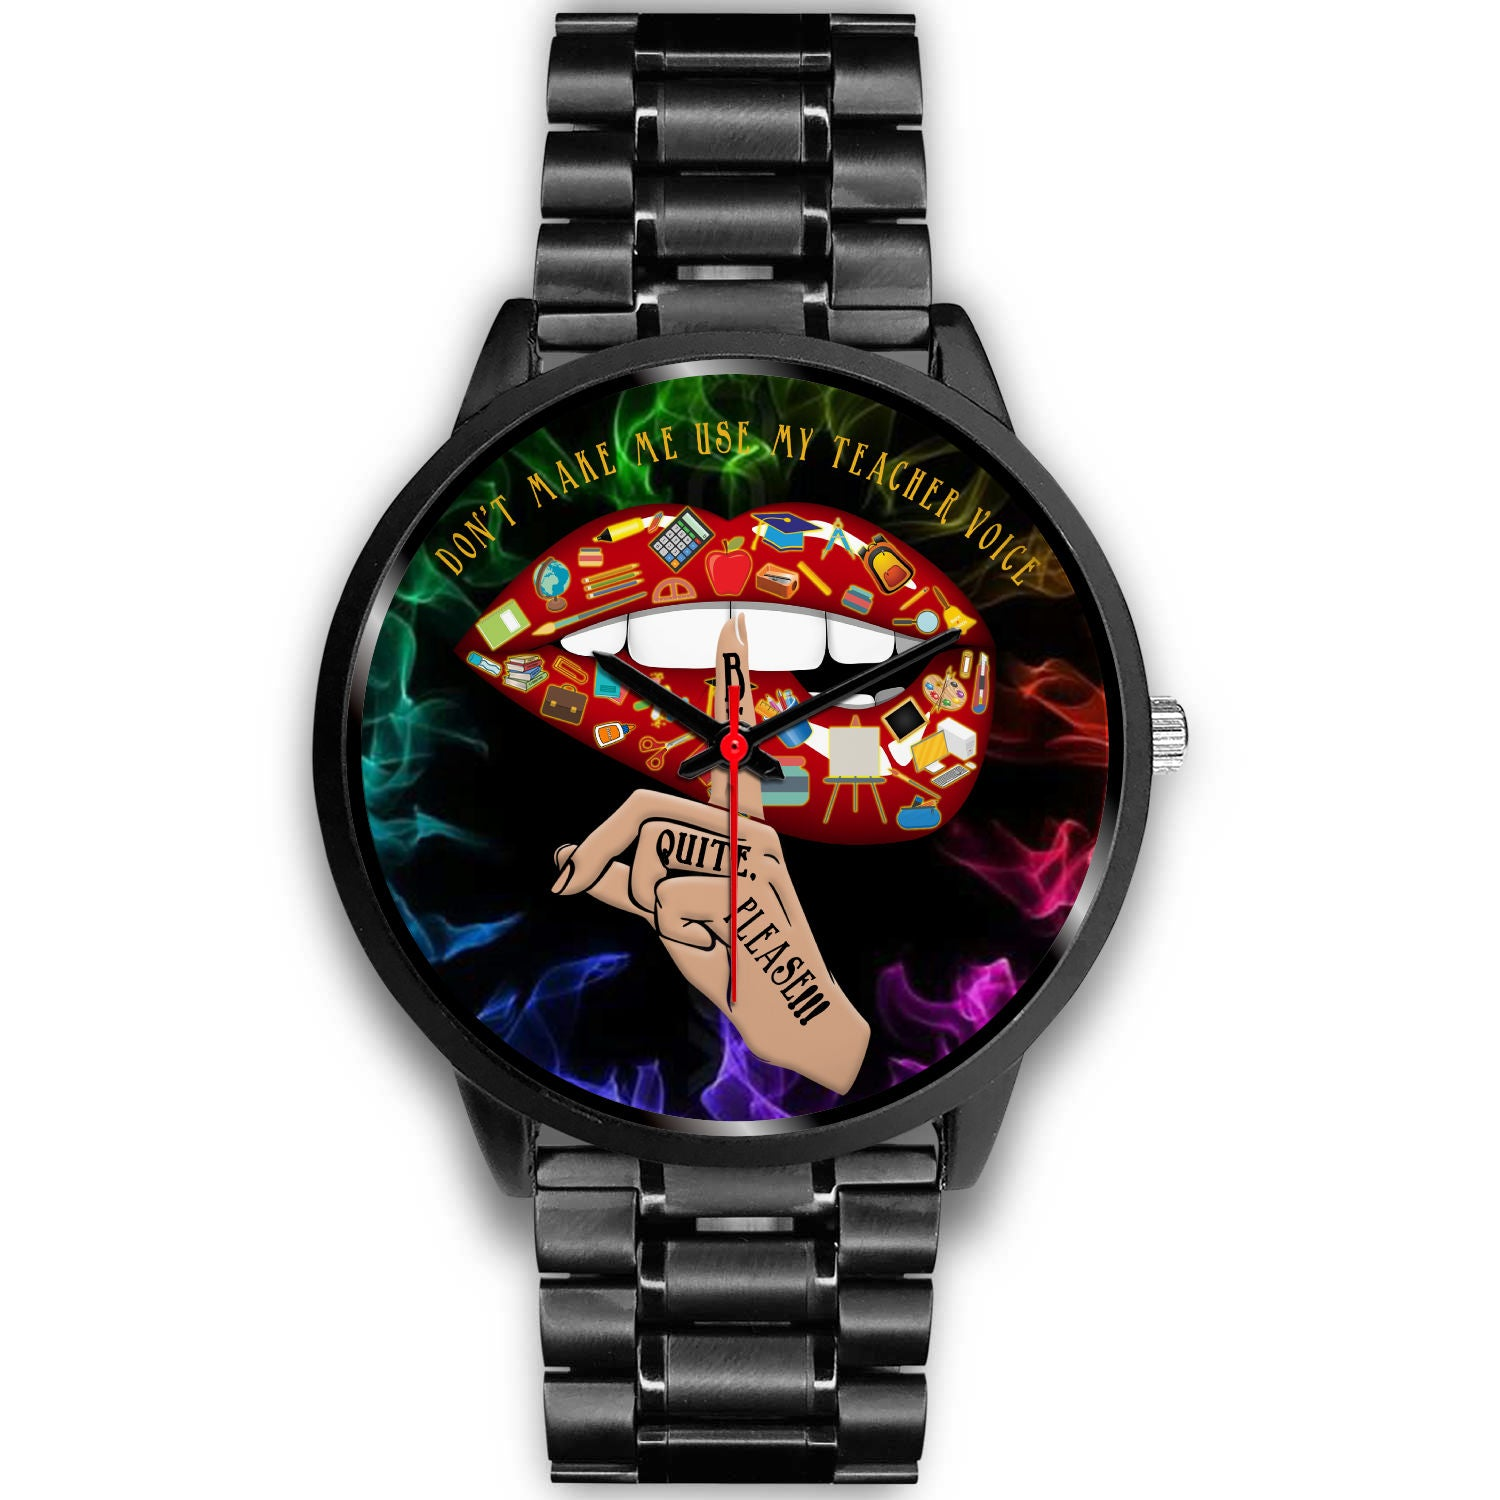 VIRA Sexy Lips Black Stainless Steel Watch For Awesome Teachers